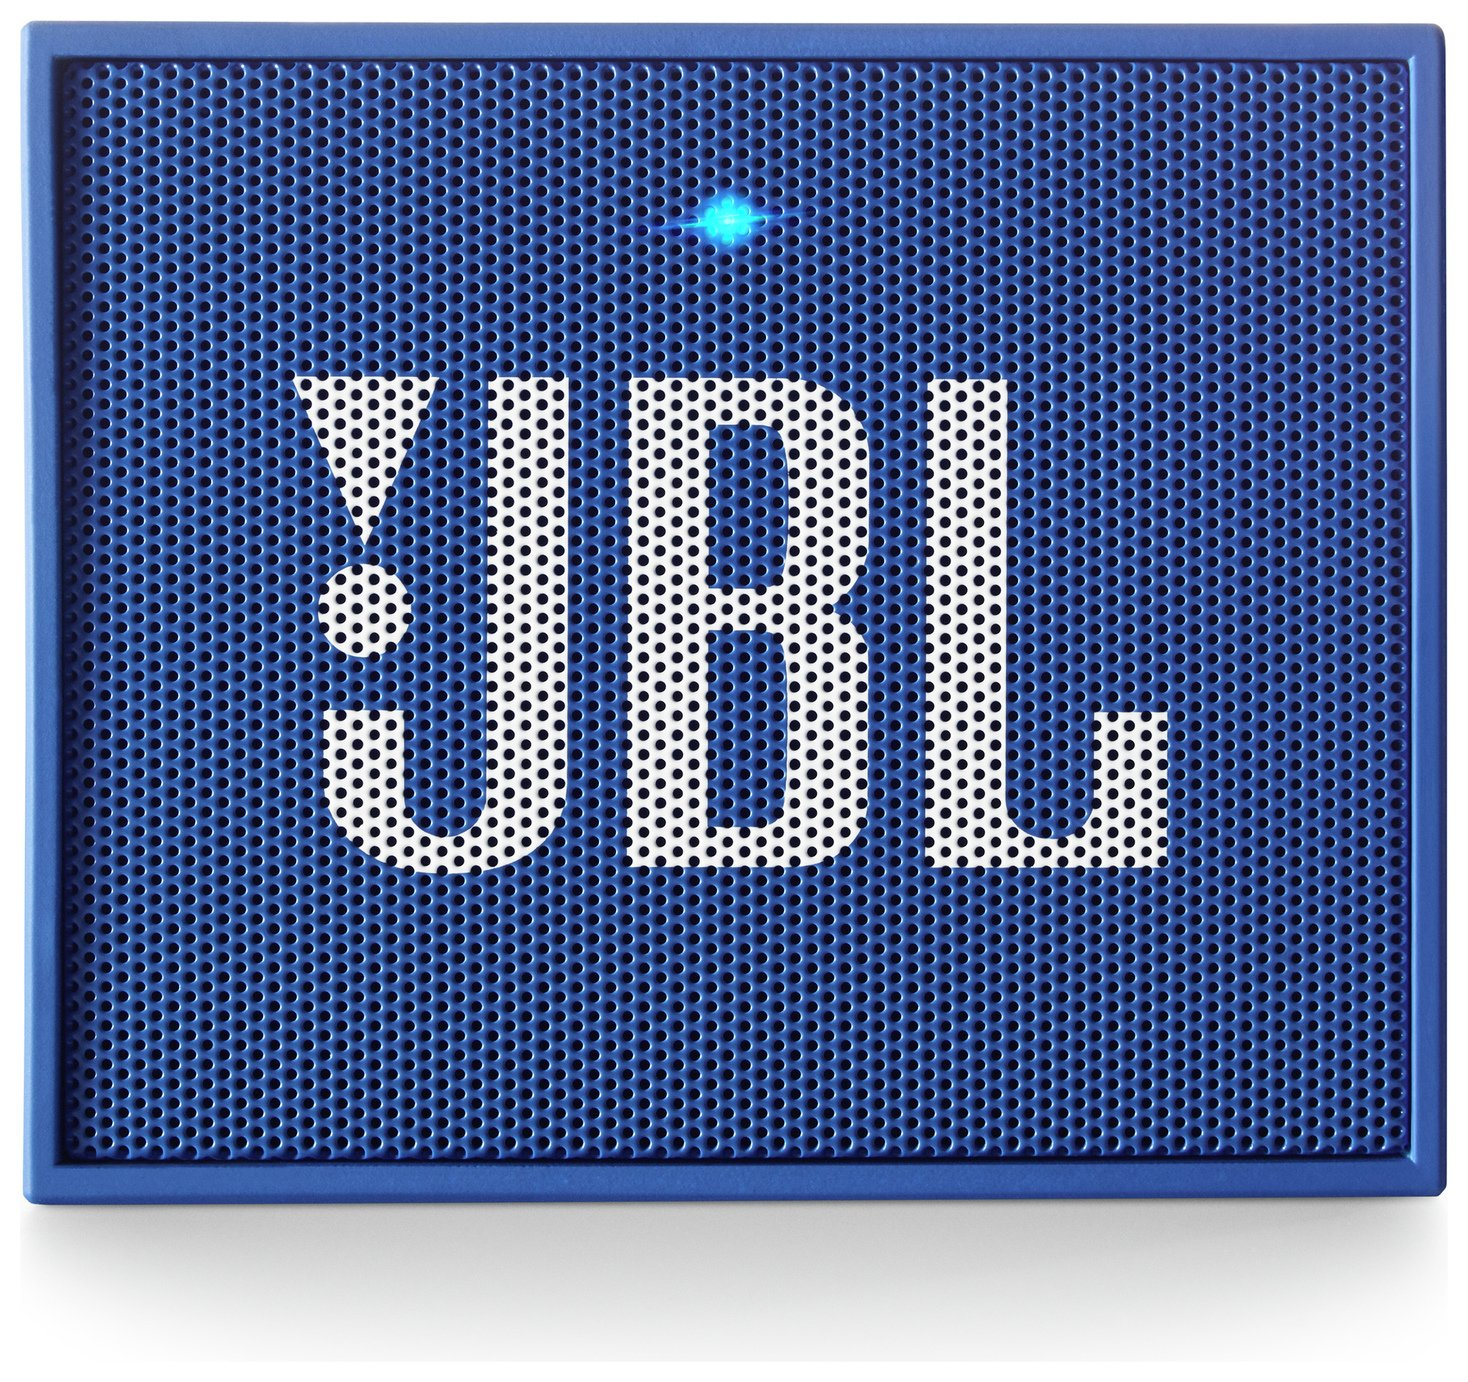 JBL JBL - GO Portable Speaker - Blue